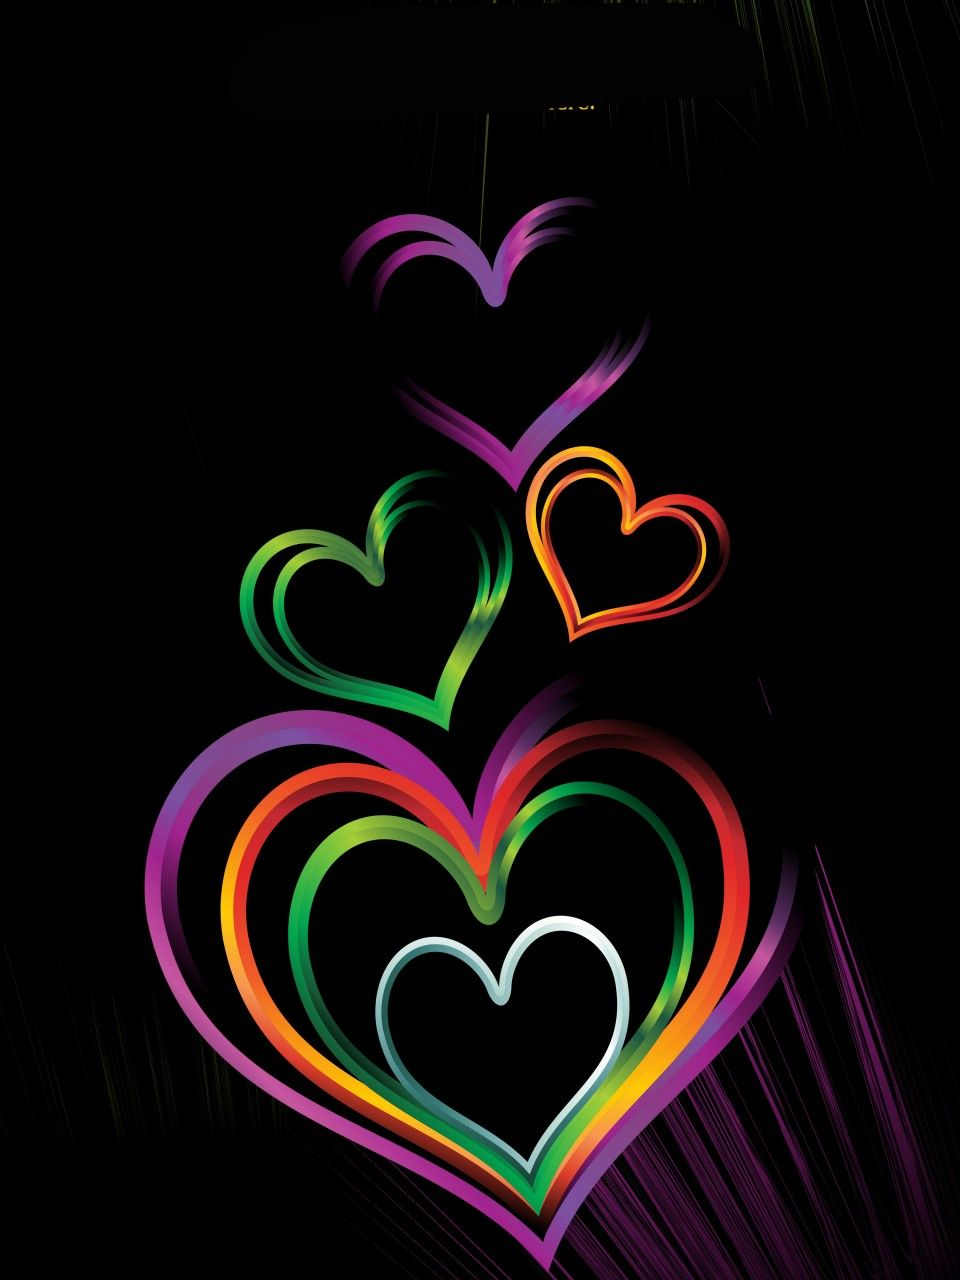 Colorful Heart Backgrounds Colorful Heart on Black